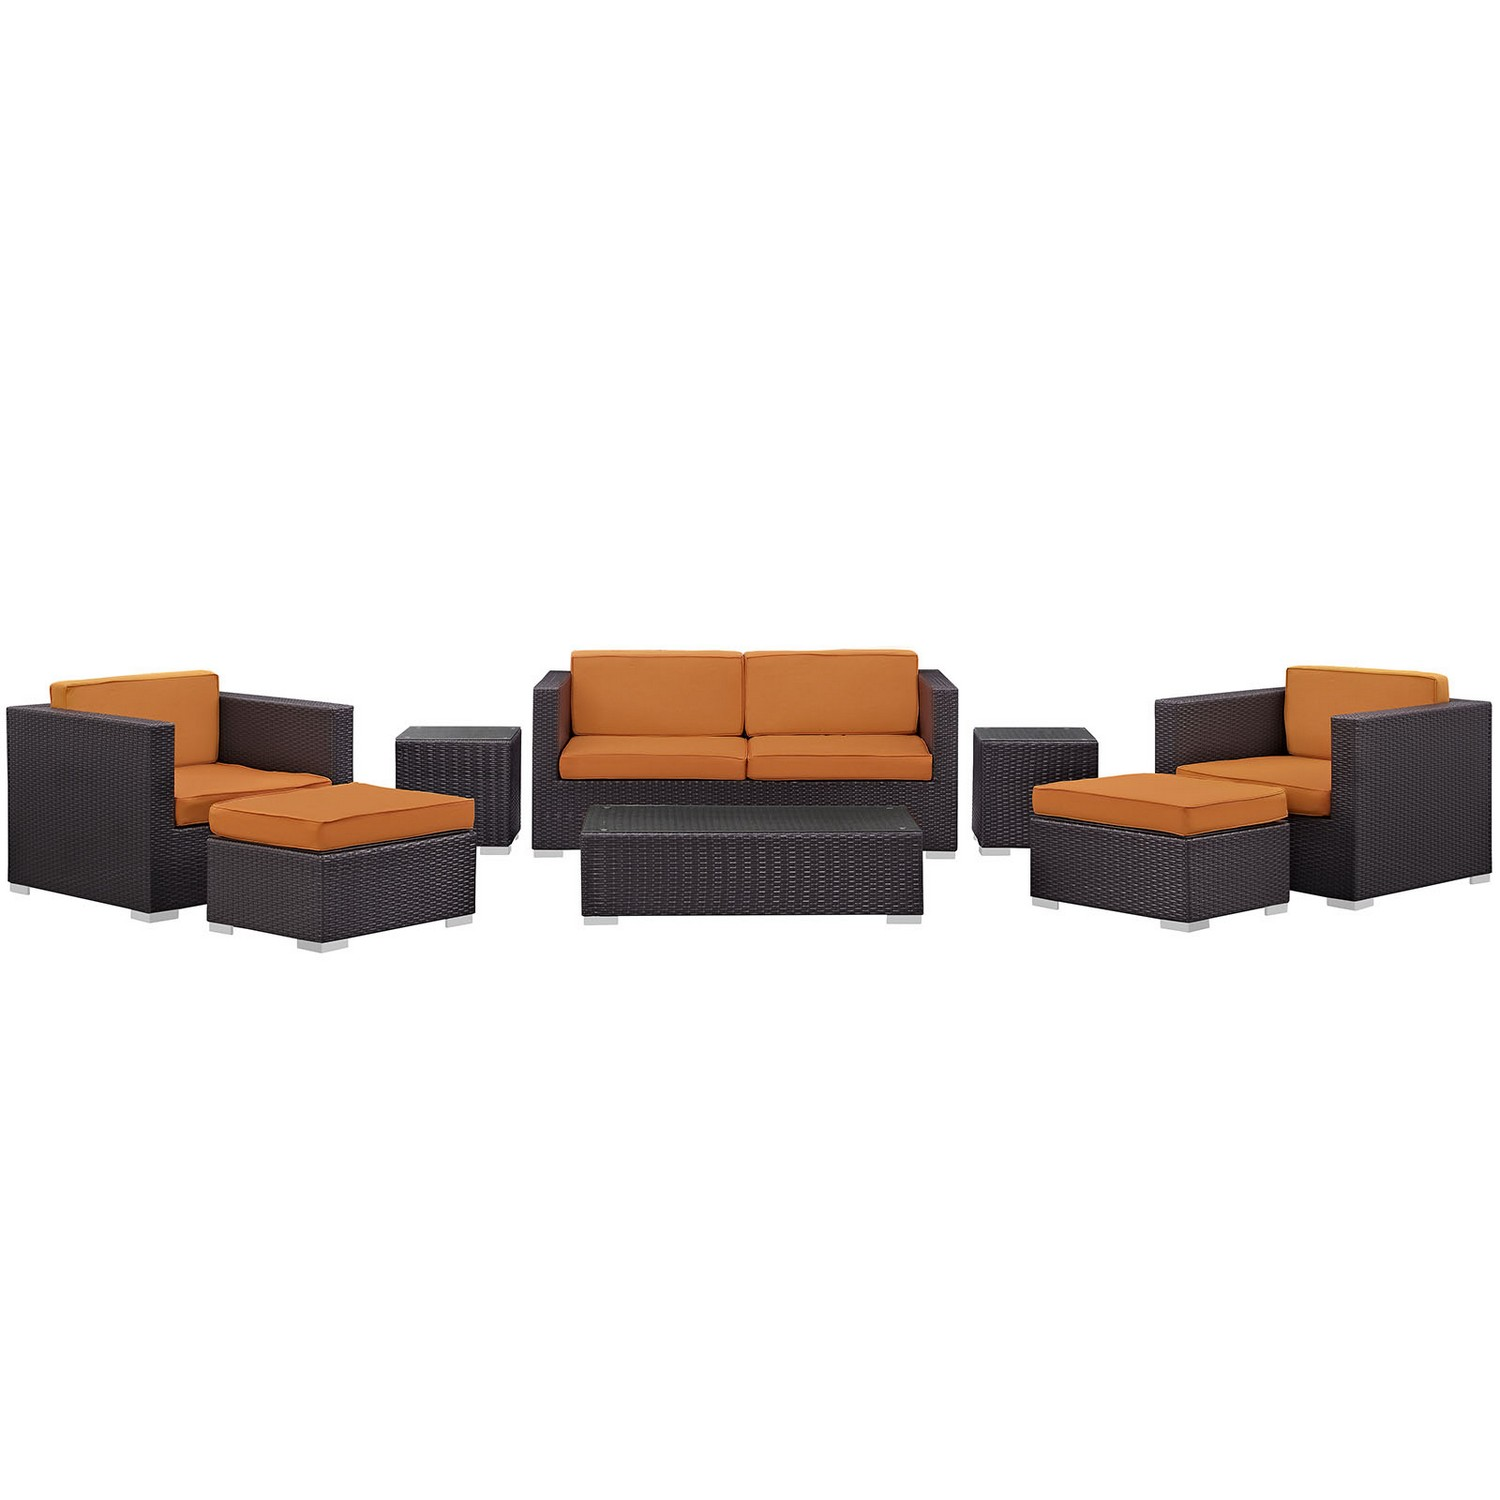 Modway Venice 8 Piece Outdoor Patio Sofa Set - Espresso/Orange